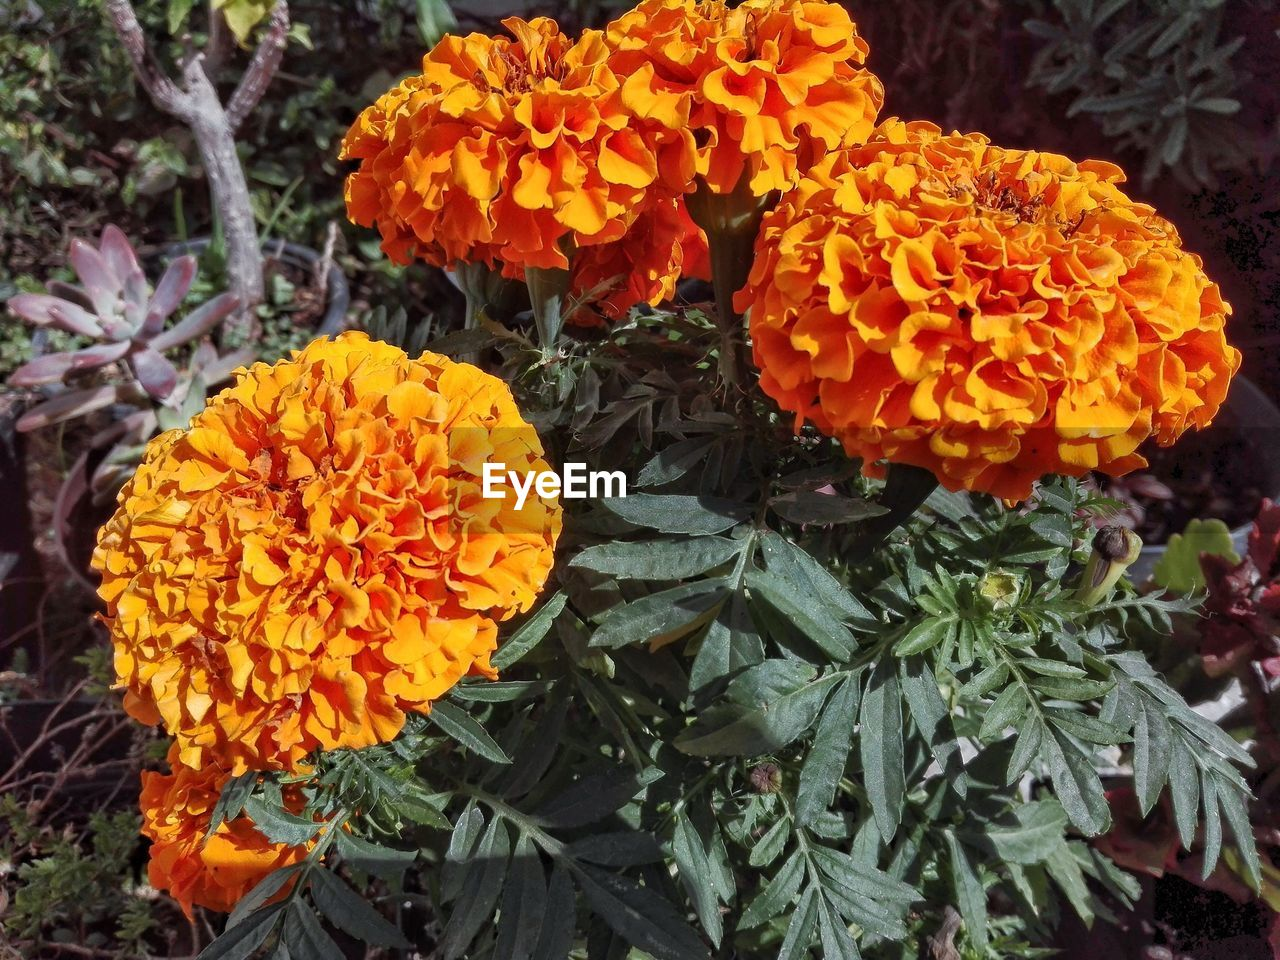 flower, growth, freshness, petal, fragility, beauty in nature, orange color, flower head, nature, blooming, plant, marigold, outdoors, no people, day, park - man made space, close-up, lantana camara, zinnia